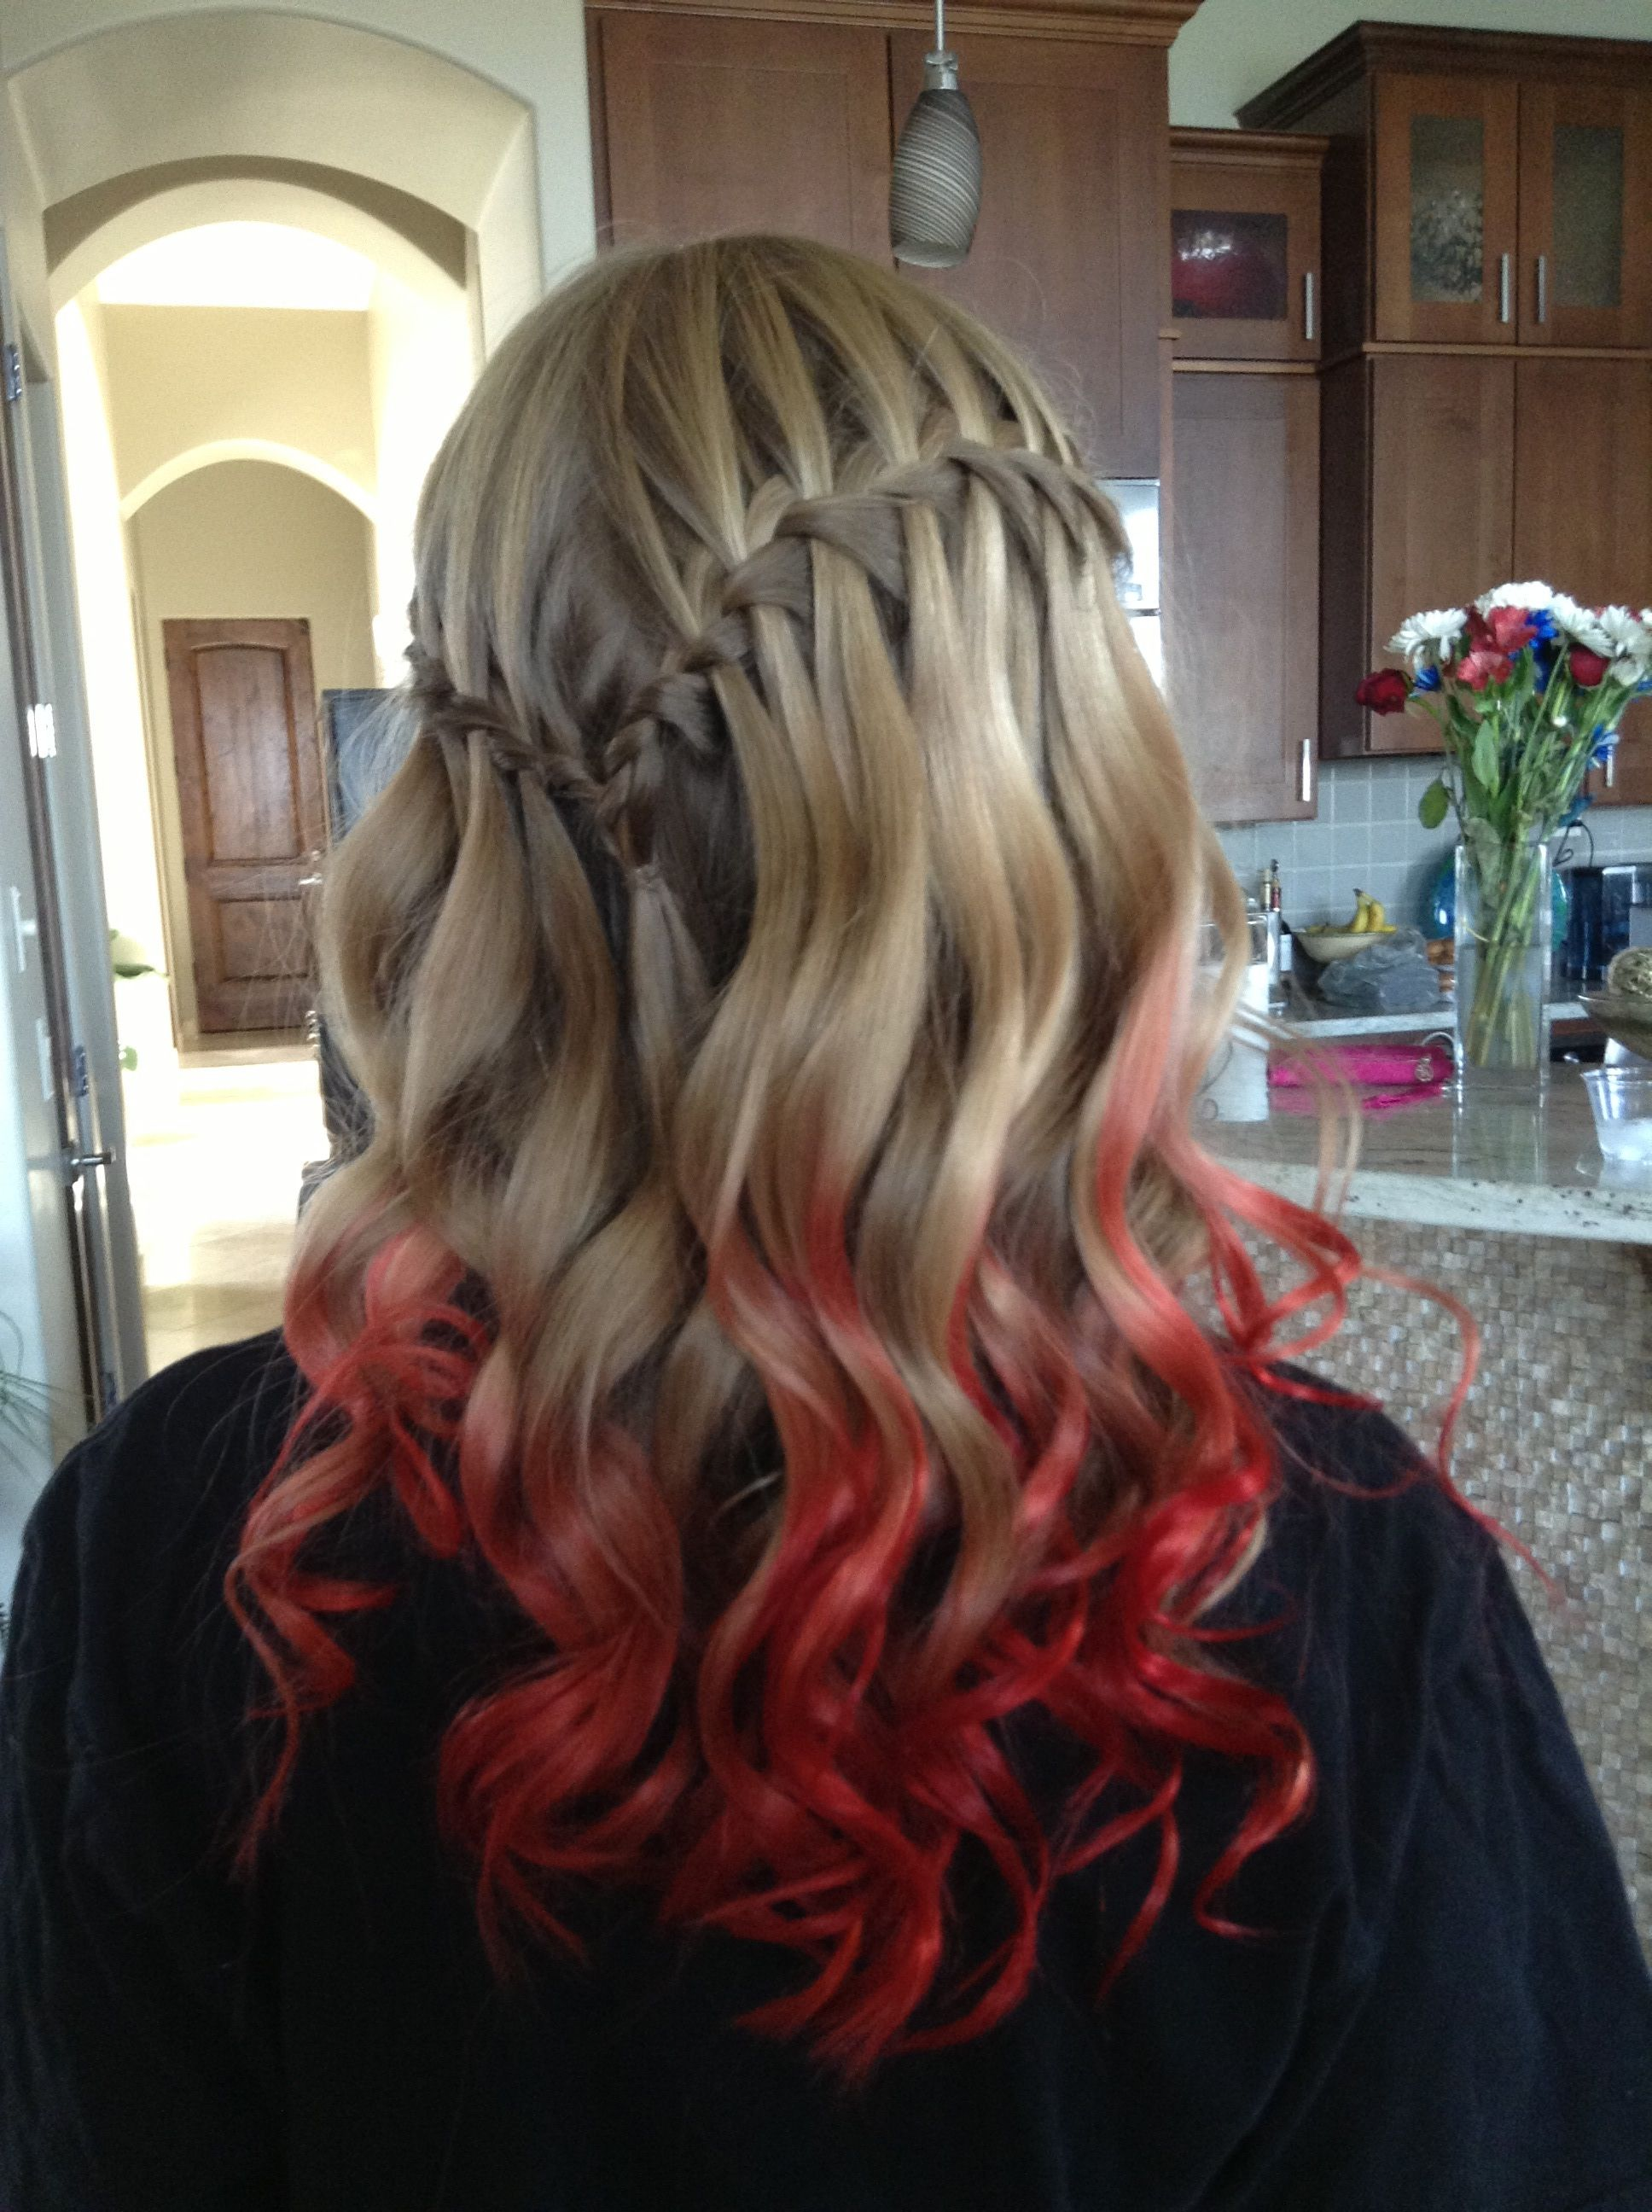 Red Ombre Hair Kool Aid Dip Dye This Is Actually Really Pretty Dip Dye Hair Blonde Hair With Red Tips Kool Aid Hair